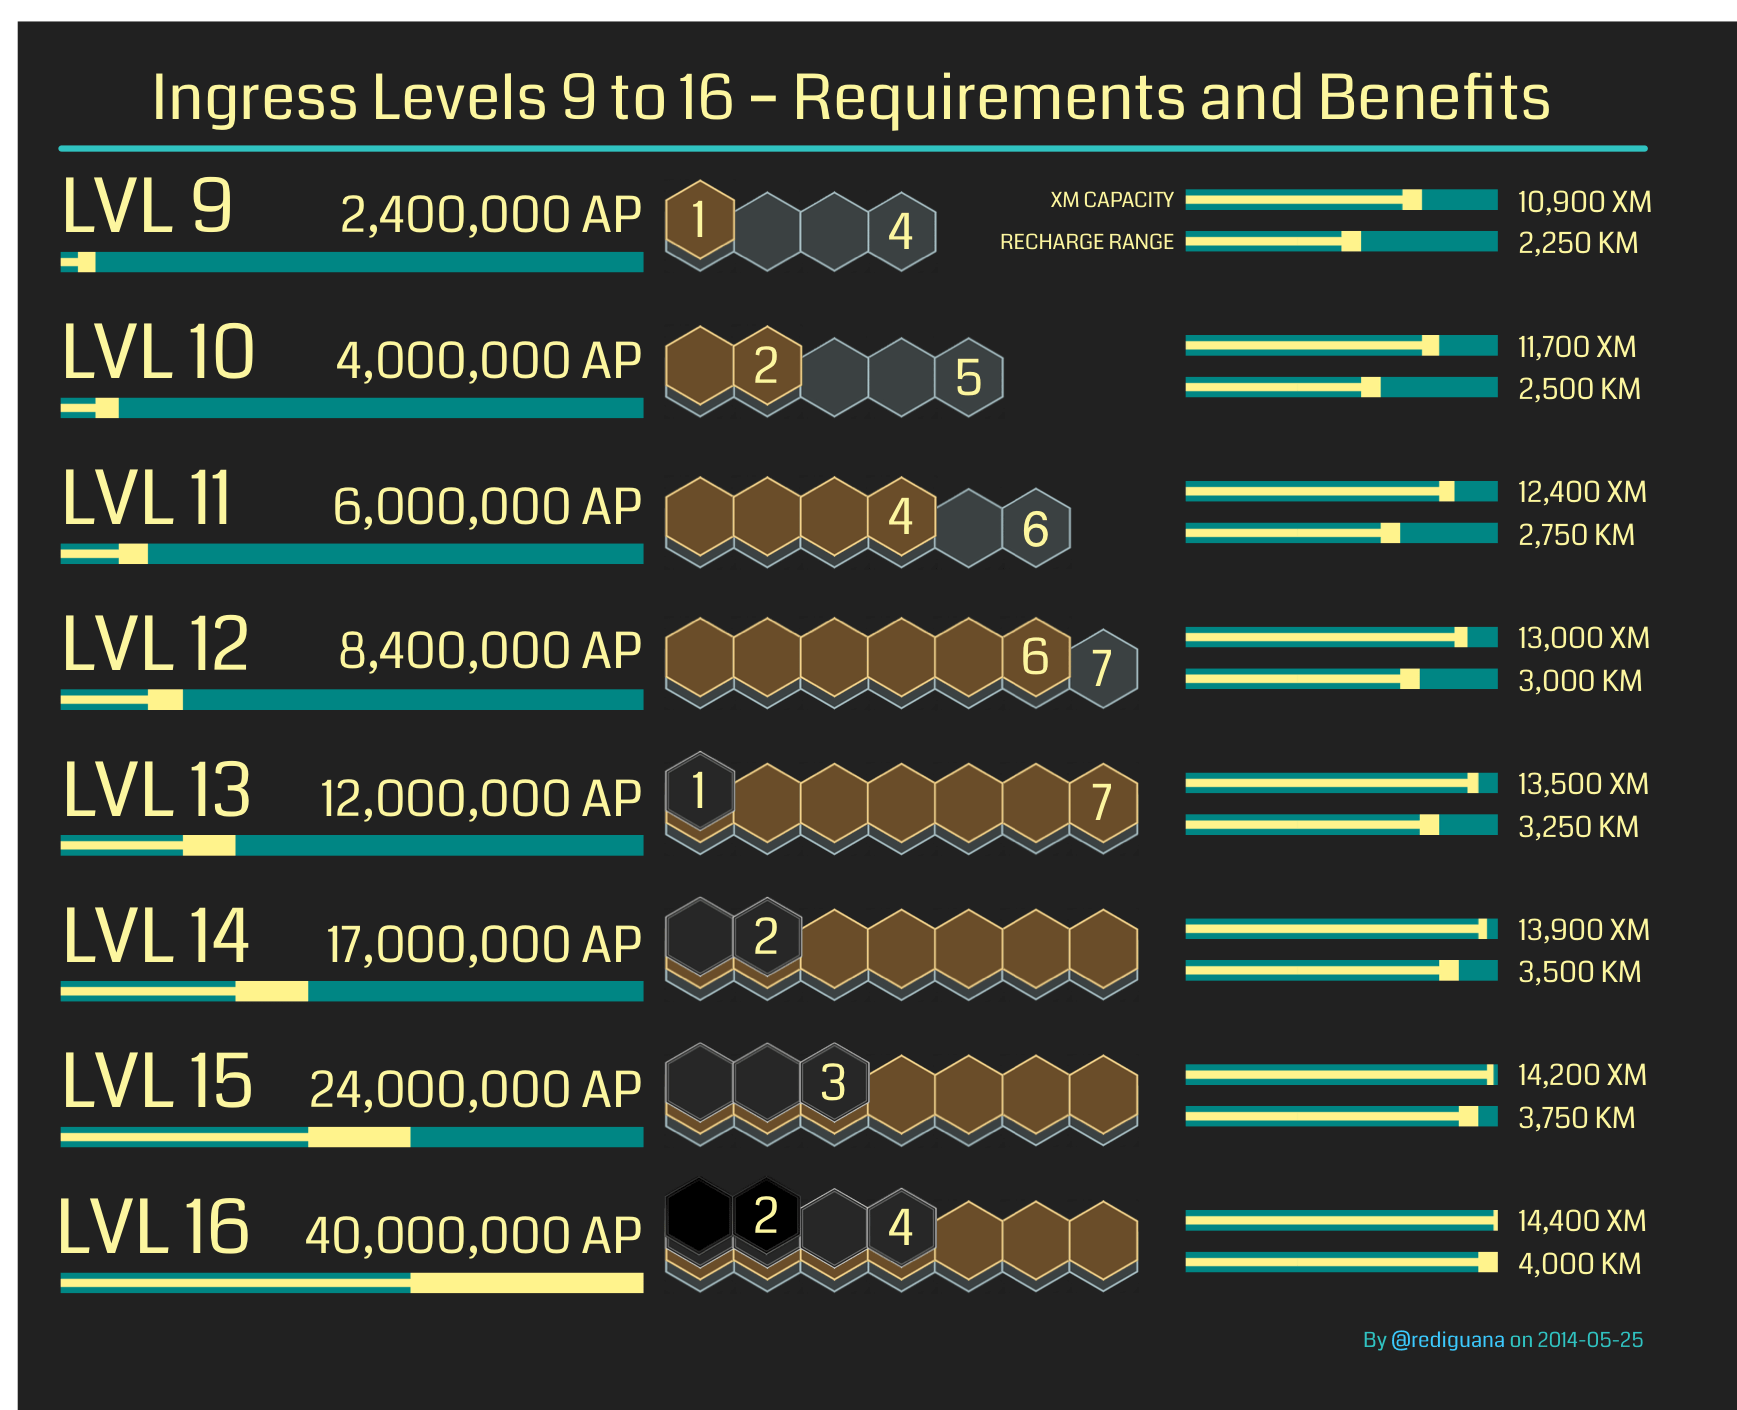 Ingress Level Infographic by @rediguana